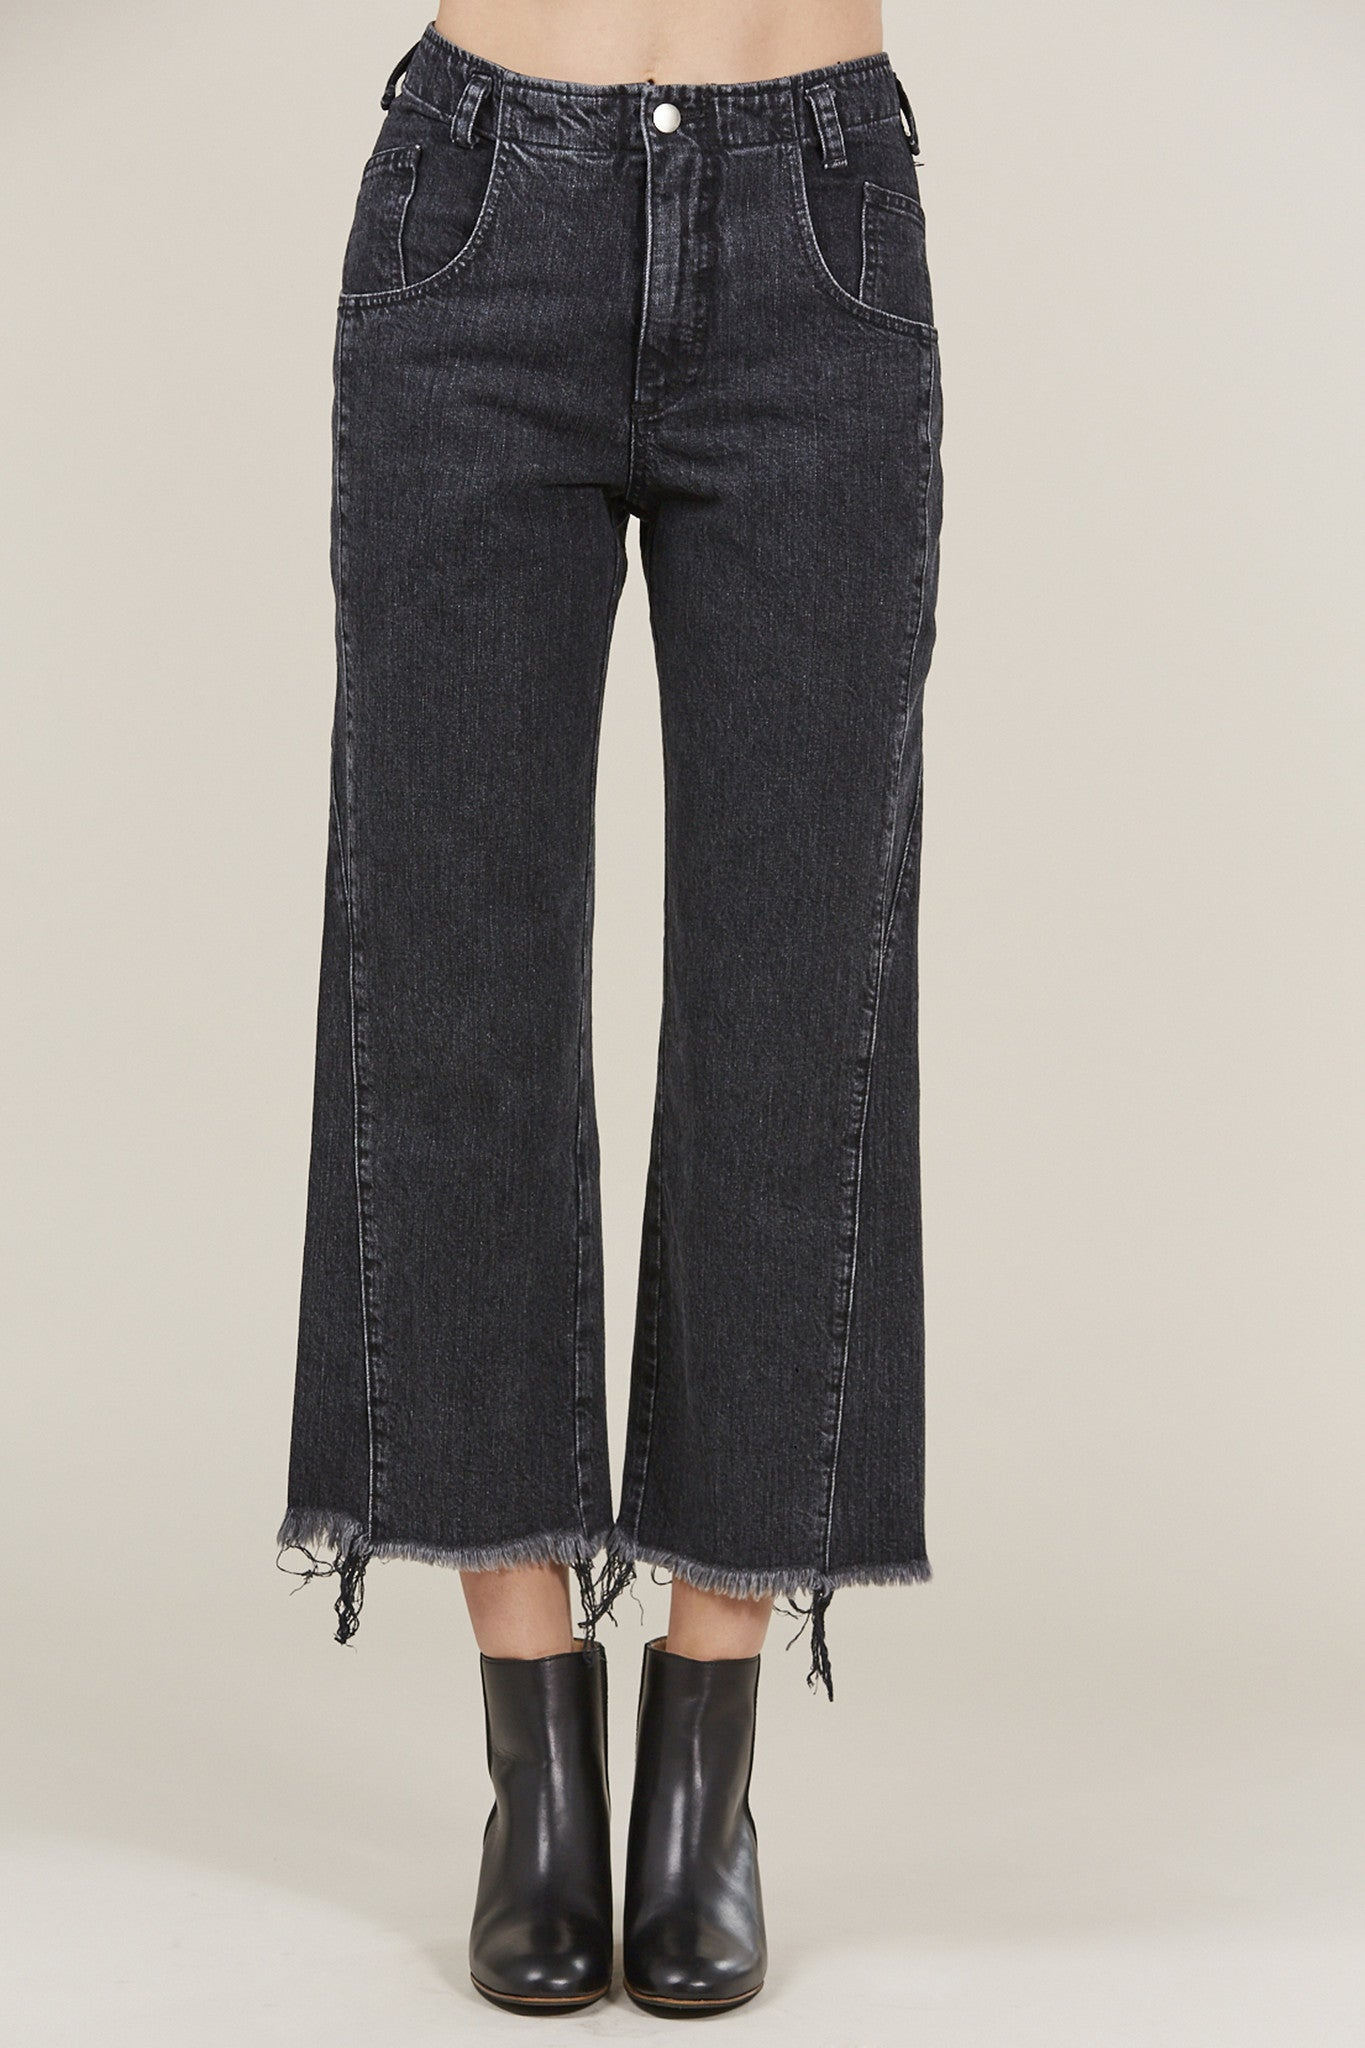 Trigger pant, Washed Black by Rachel Comey